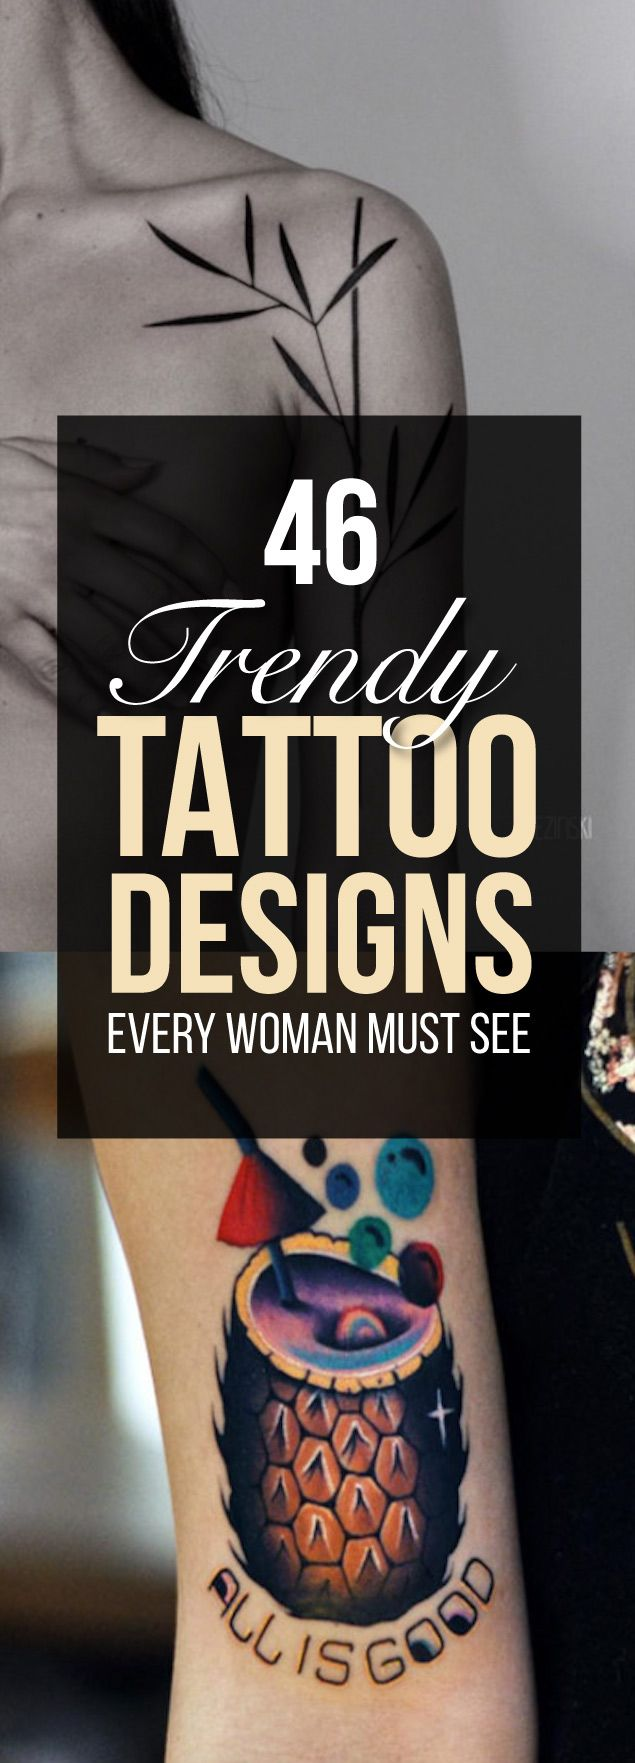 46 Trendy Tattoo Designs Every Woman Must See | TattooBlend